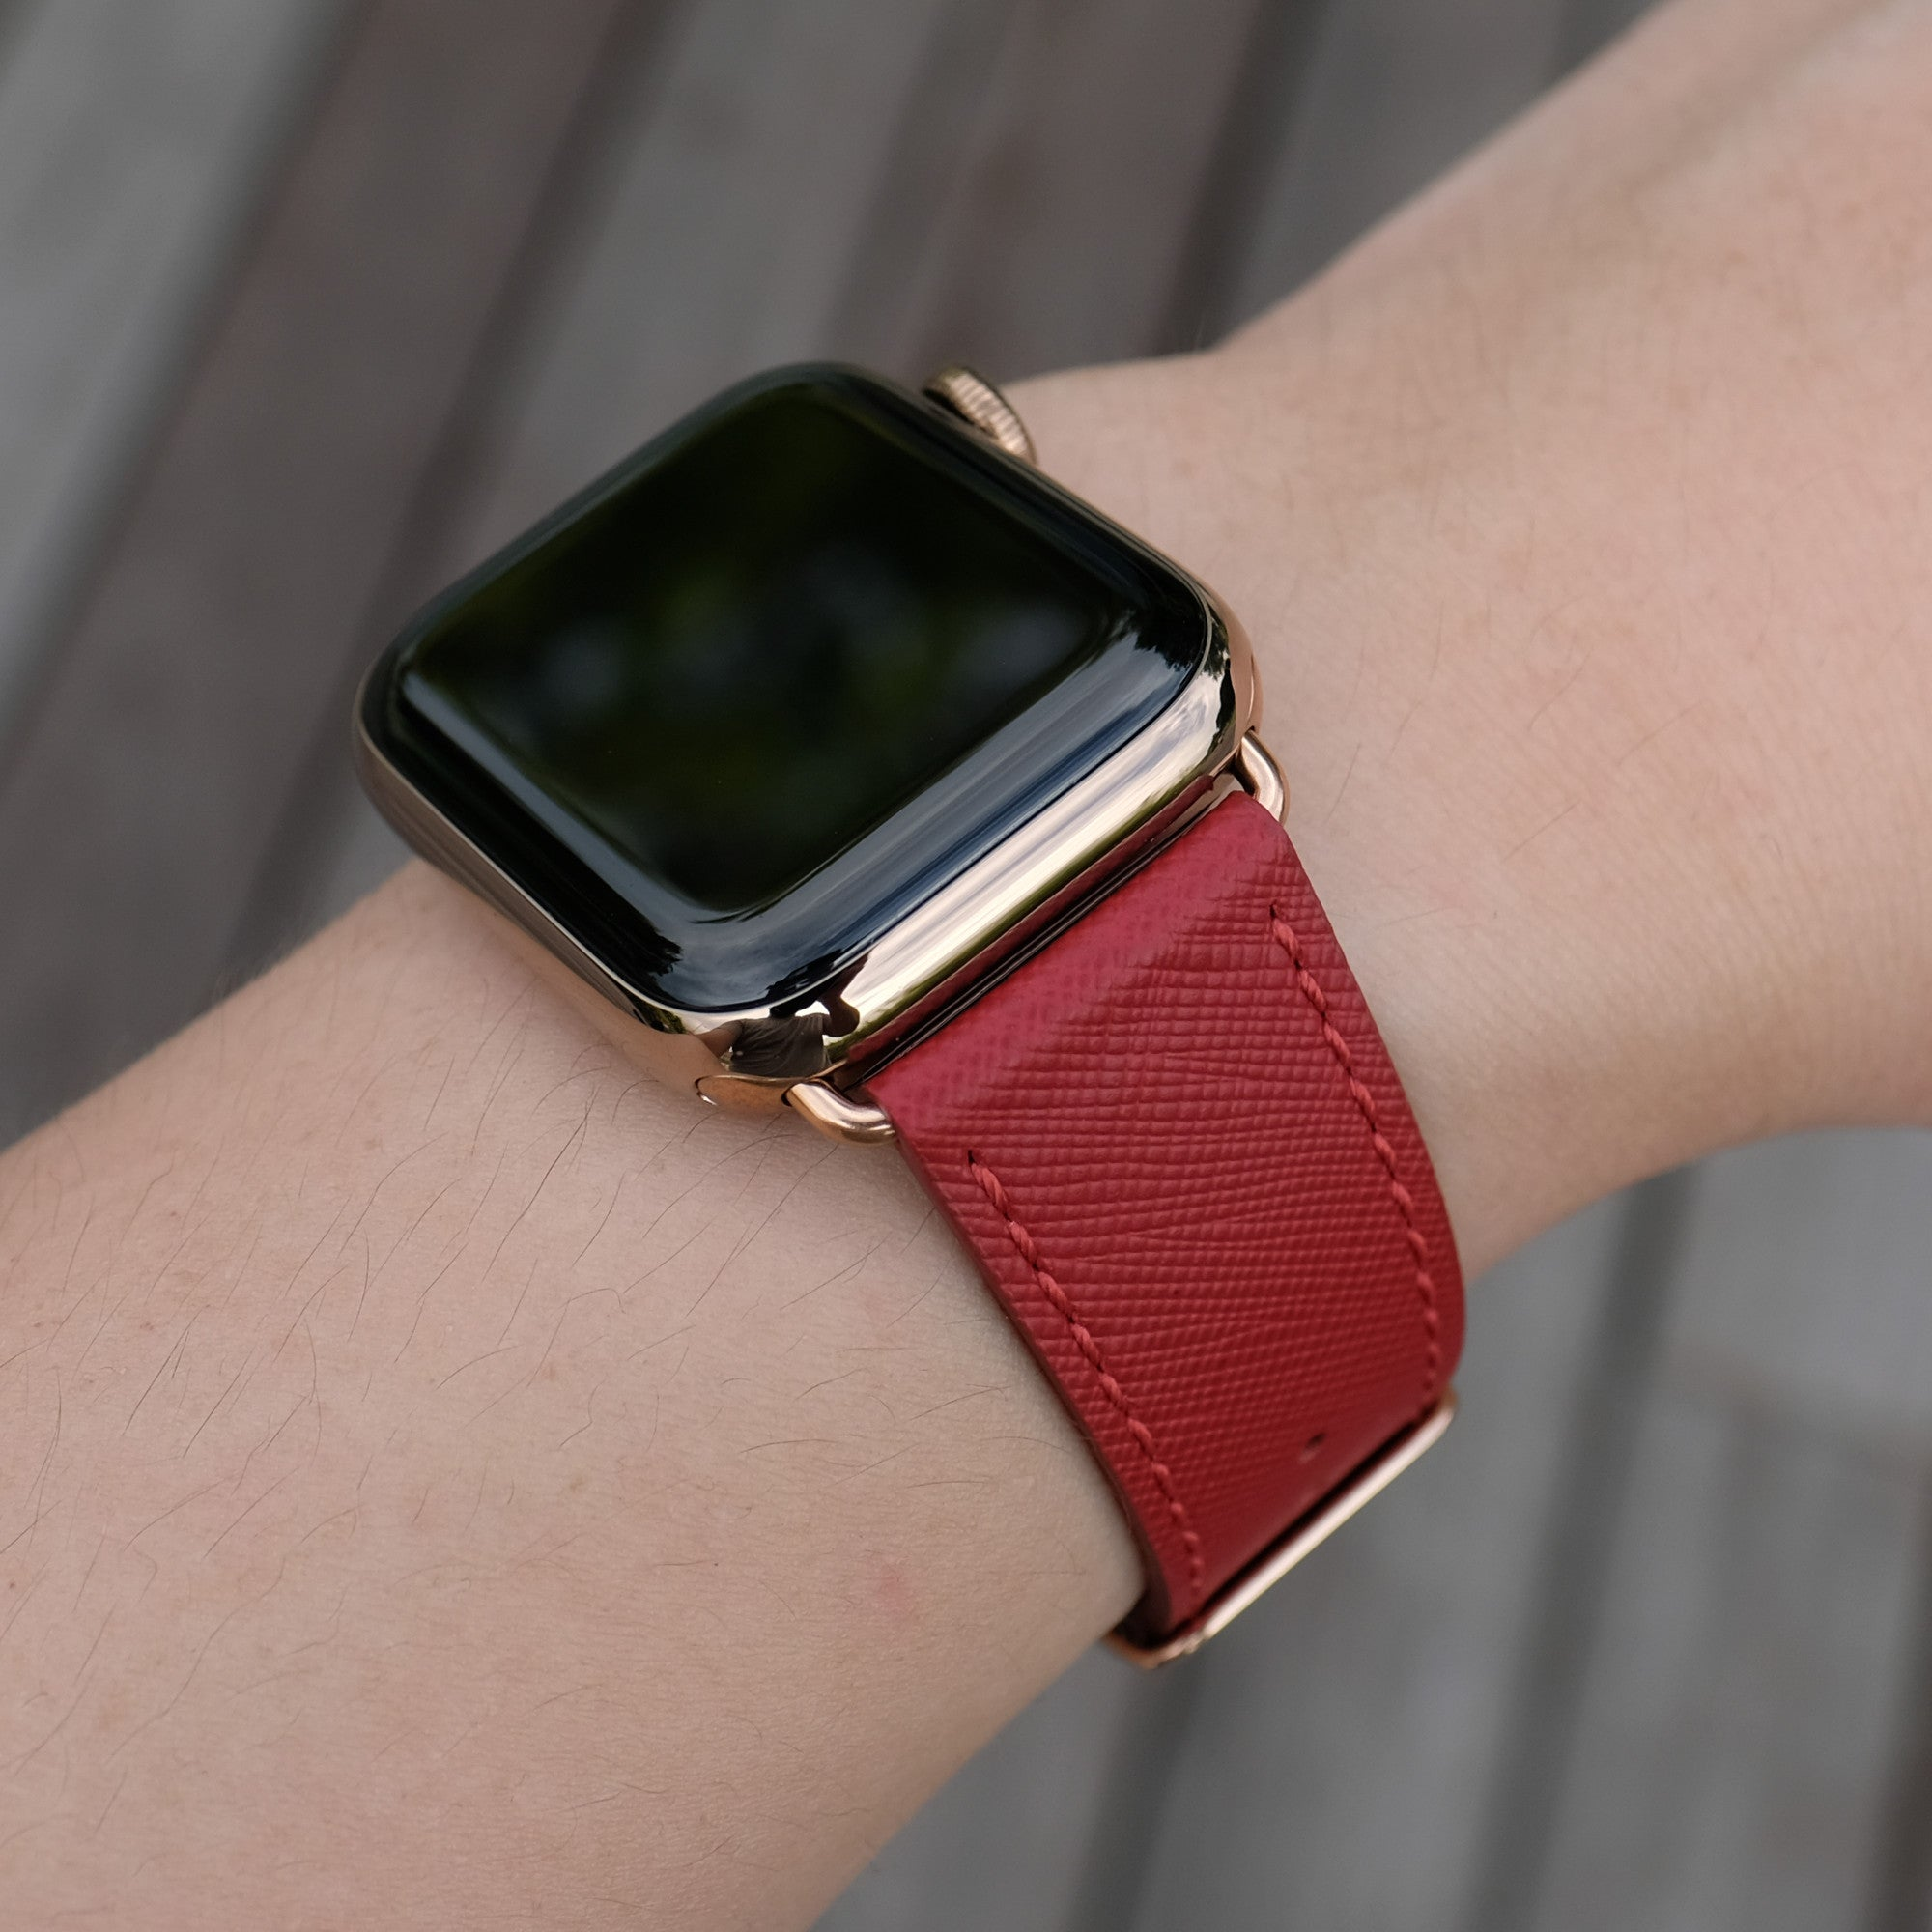 Pin and Buckle Apple Watch Bands - Saffiano - Textured Leather Apple Watch Bands - Crimson Red - Gold